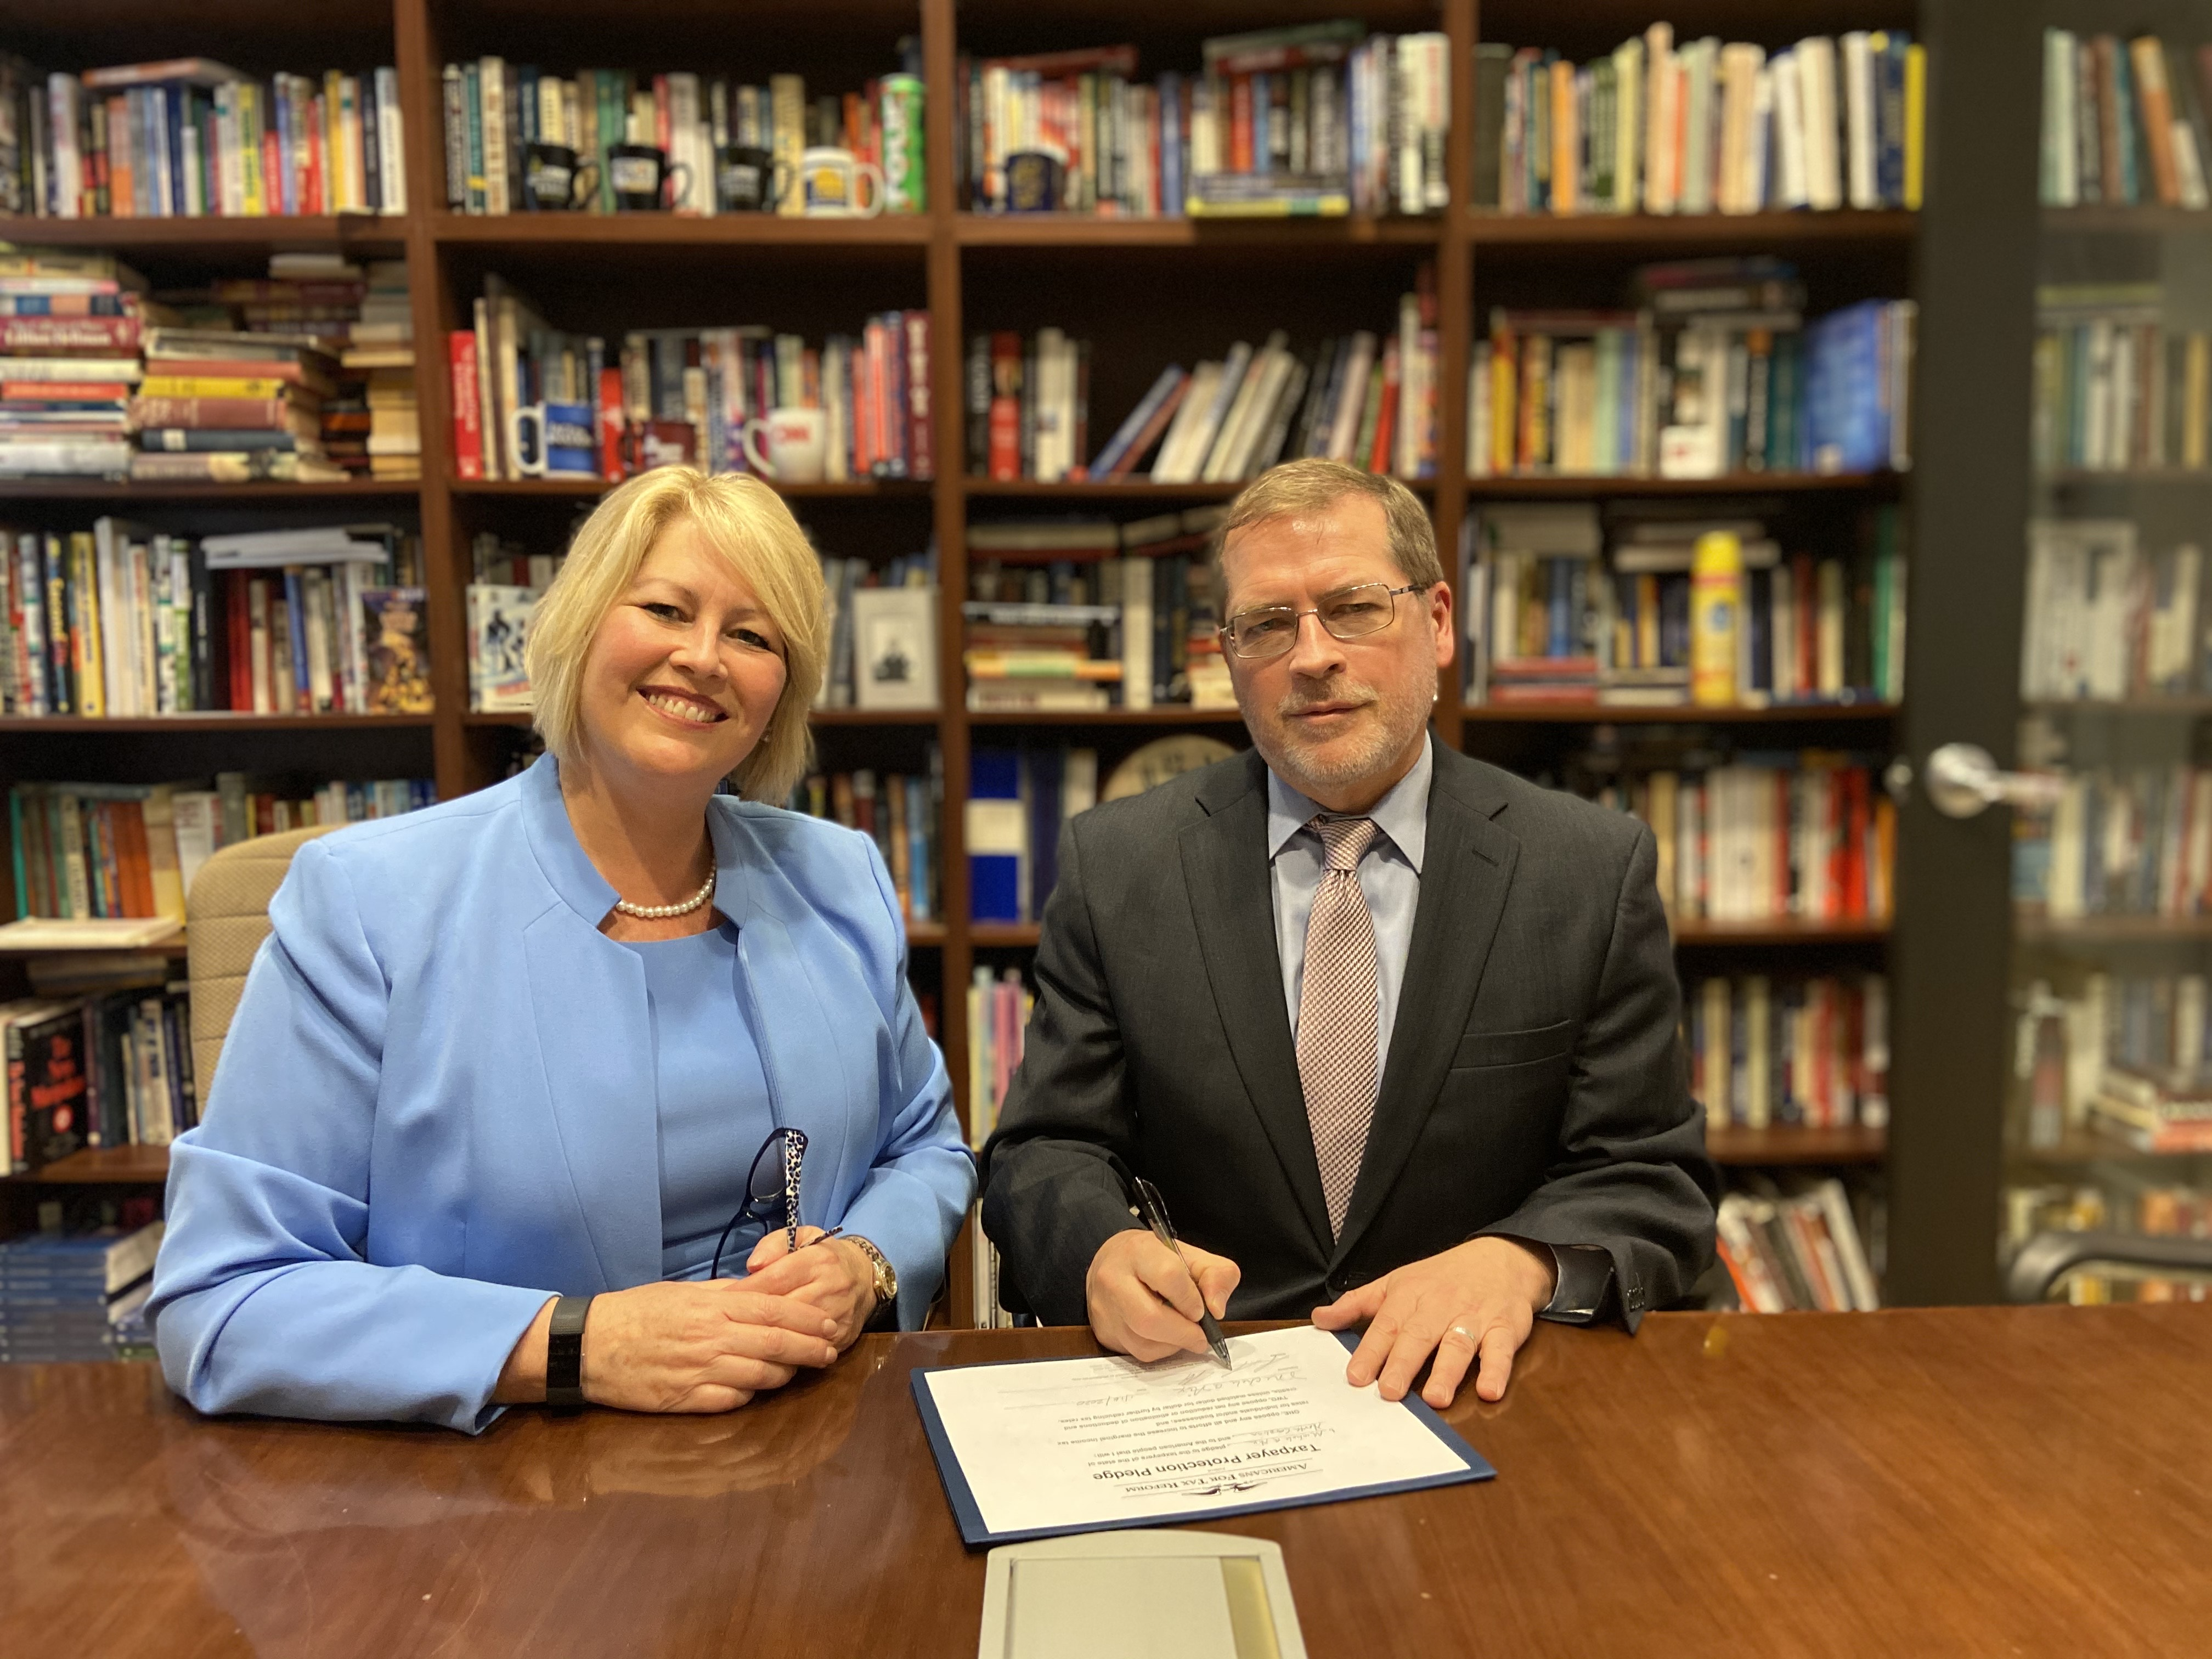 Michele Nixsigns the Taxpayer Protection Pledge, becoming the first in her district to do so. She met with Grover Norquist, President of Americans for Tax Reform, while in DC to discuss tax reform in the district.